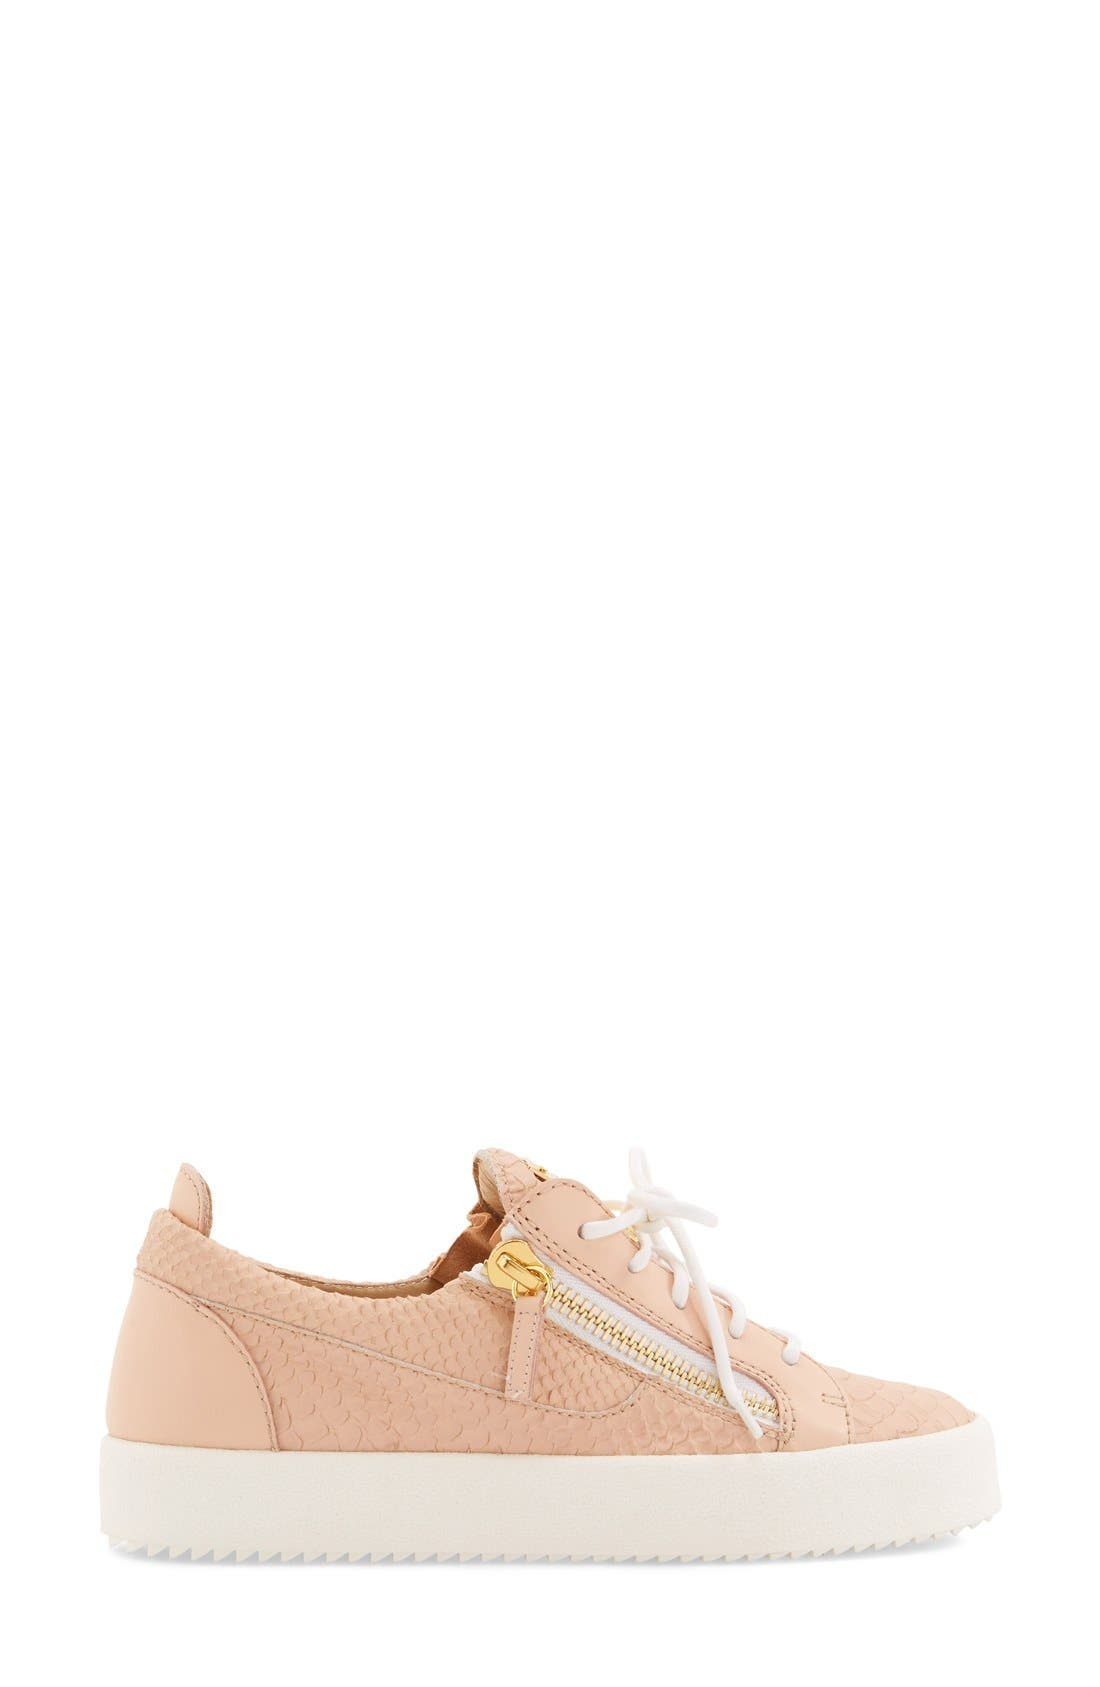 'May London' Snake Embossed Low Top Sneaker,                             Alternate thumbnail 4, color,                             Nude Leather